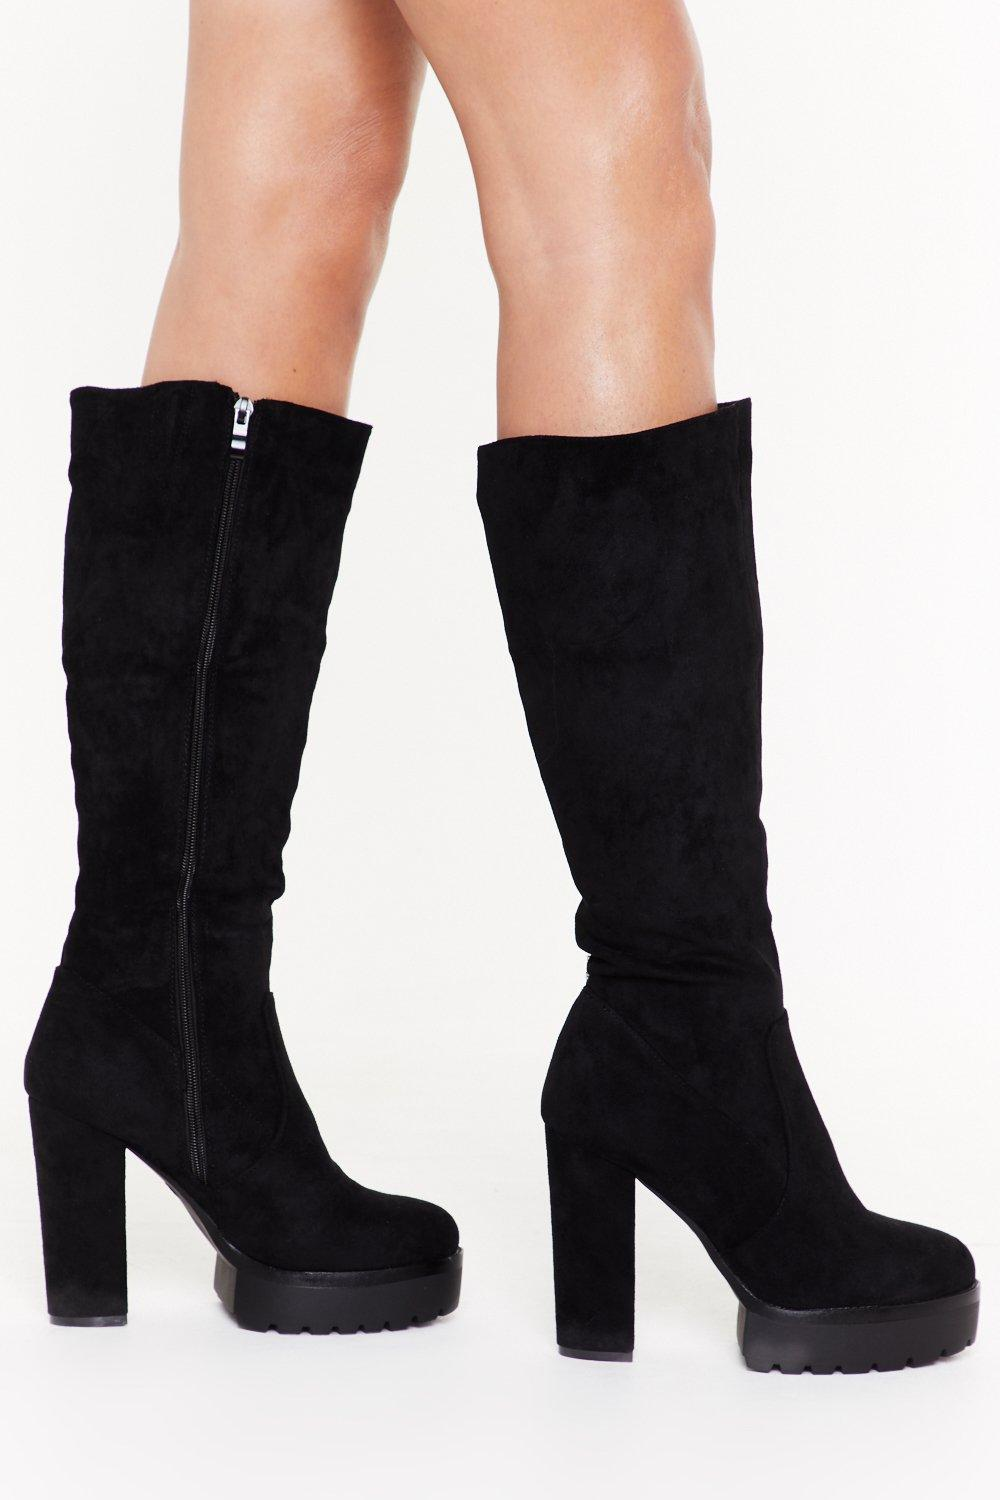 Image of Faux Suede Platform Cleated Knee Boots